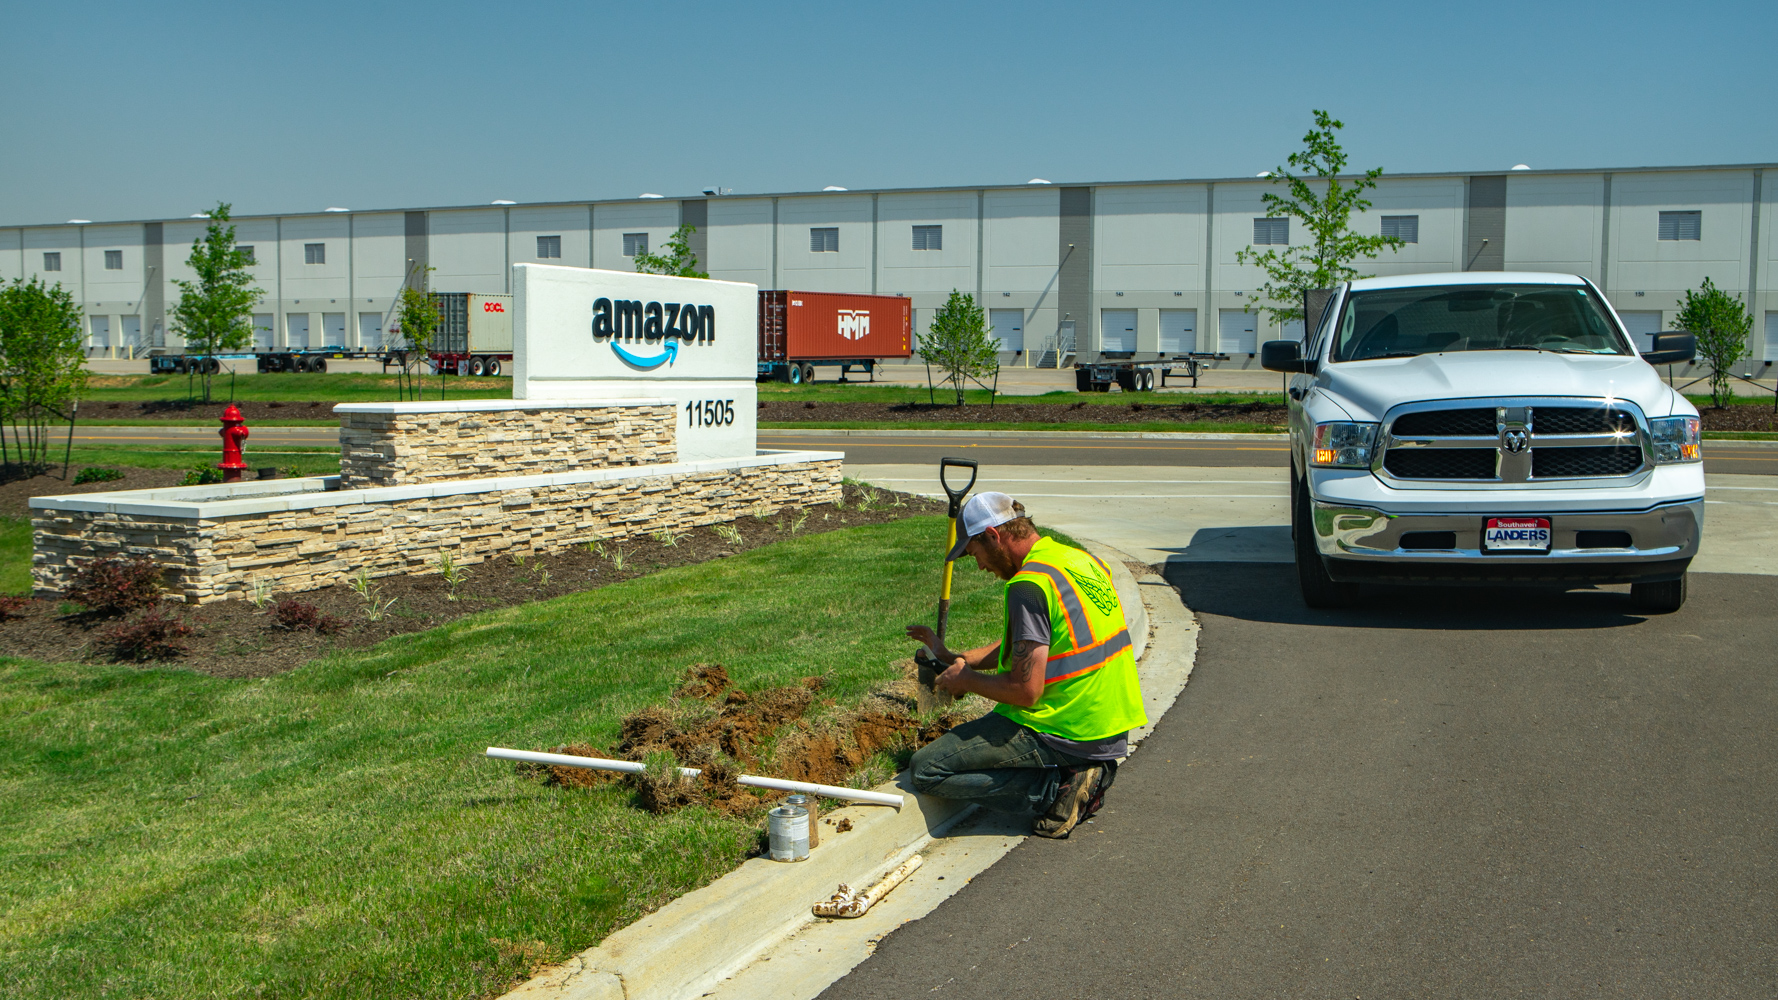 Commercial landscaping Amazon Warehouse irrigation repair 5